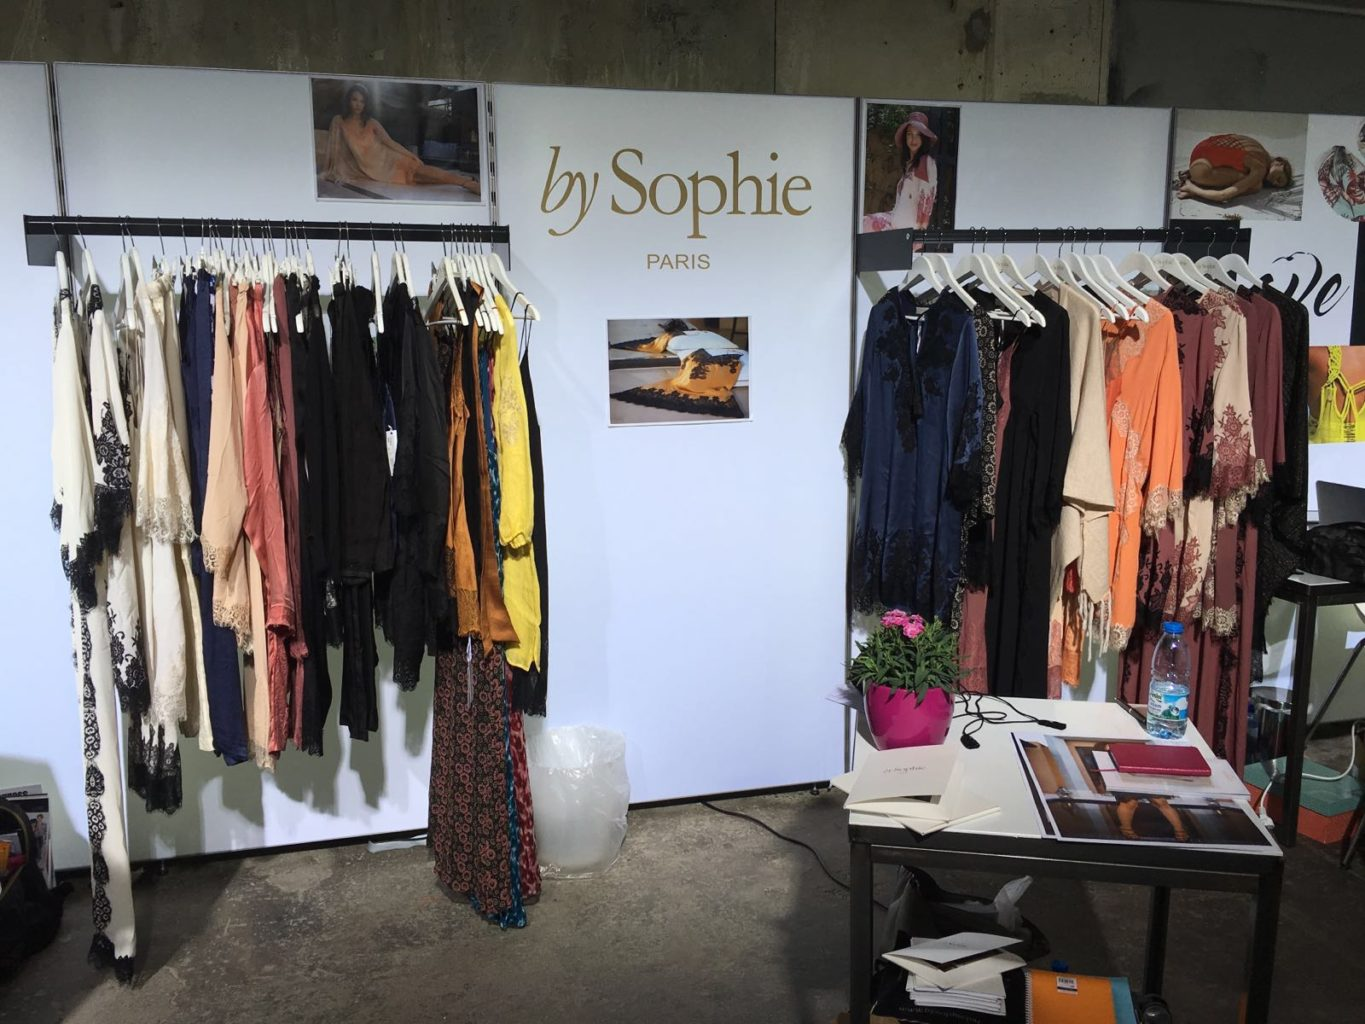 Salon Show Order Berlin Juin 2016 By Sophie Paris - Salon Paris Septembre 2016